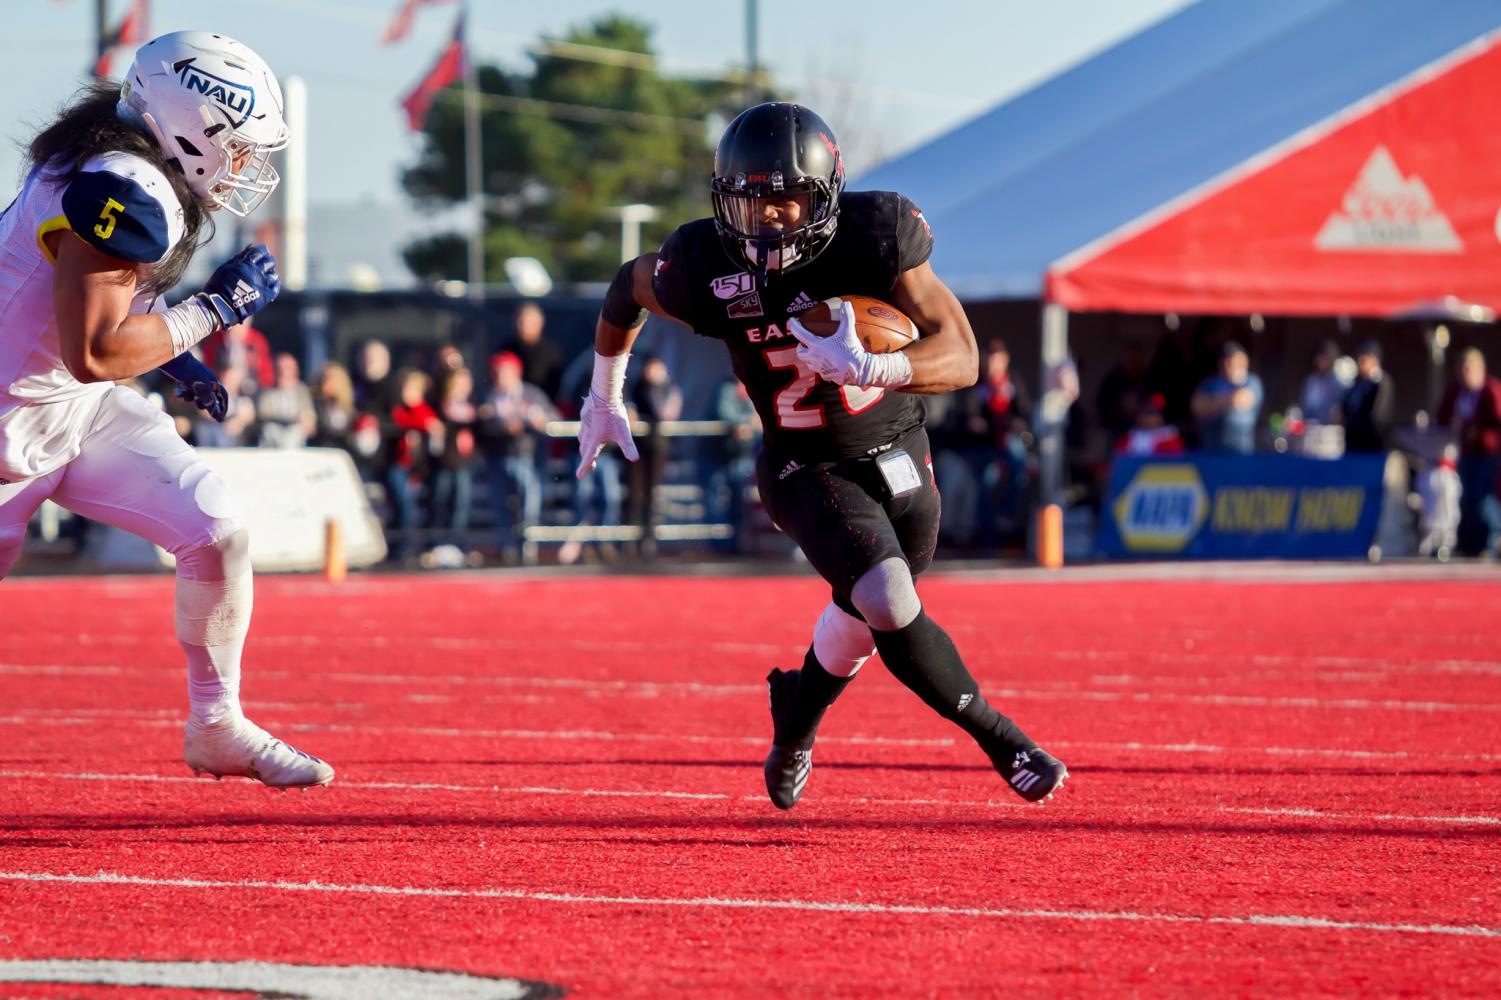 EWU senior running back Antoine Custer Jr. cuts upfield. Custer had 139 rushing yards and three touchdowns in EWU's 66-38 win over NAU Saturday.